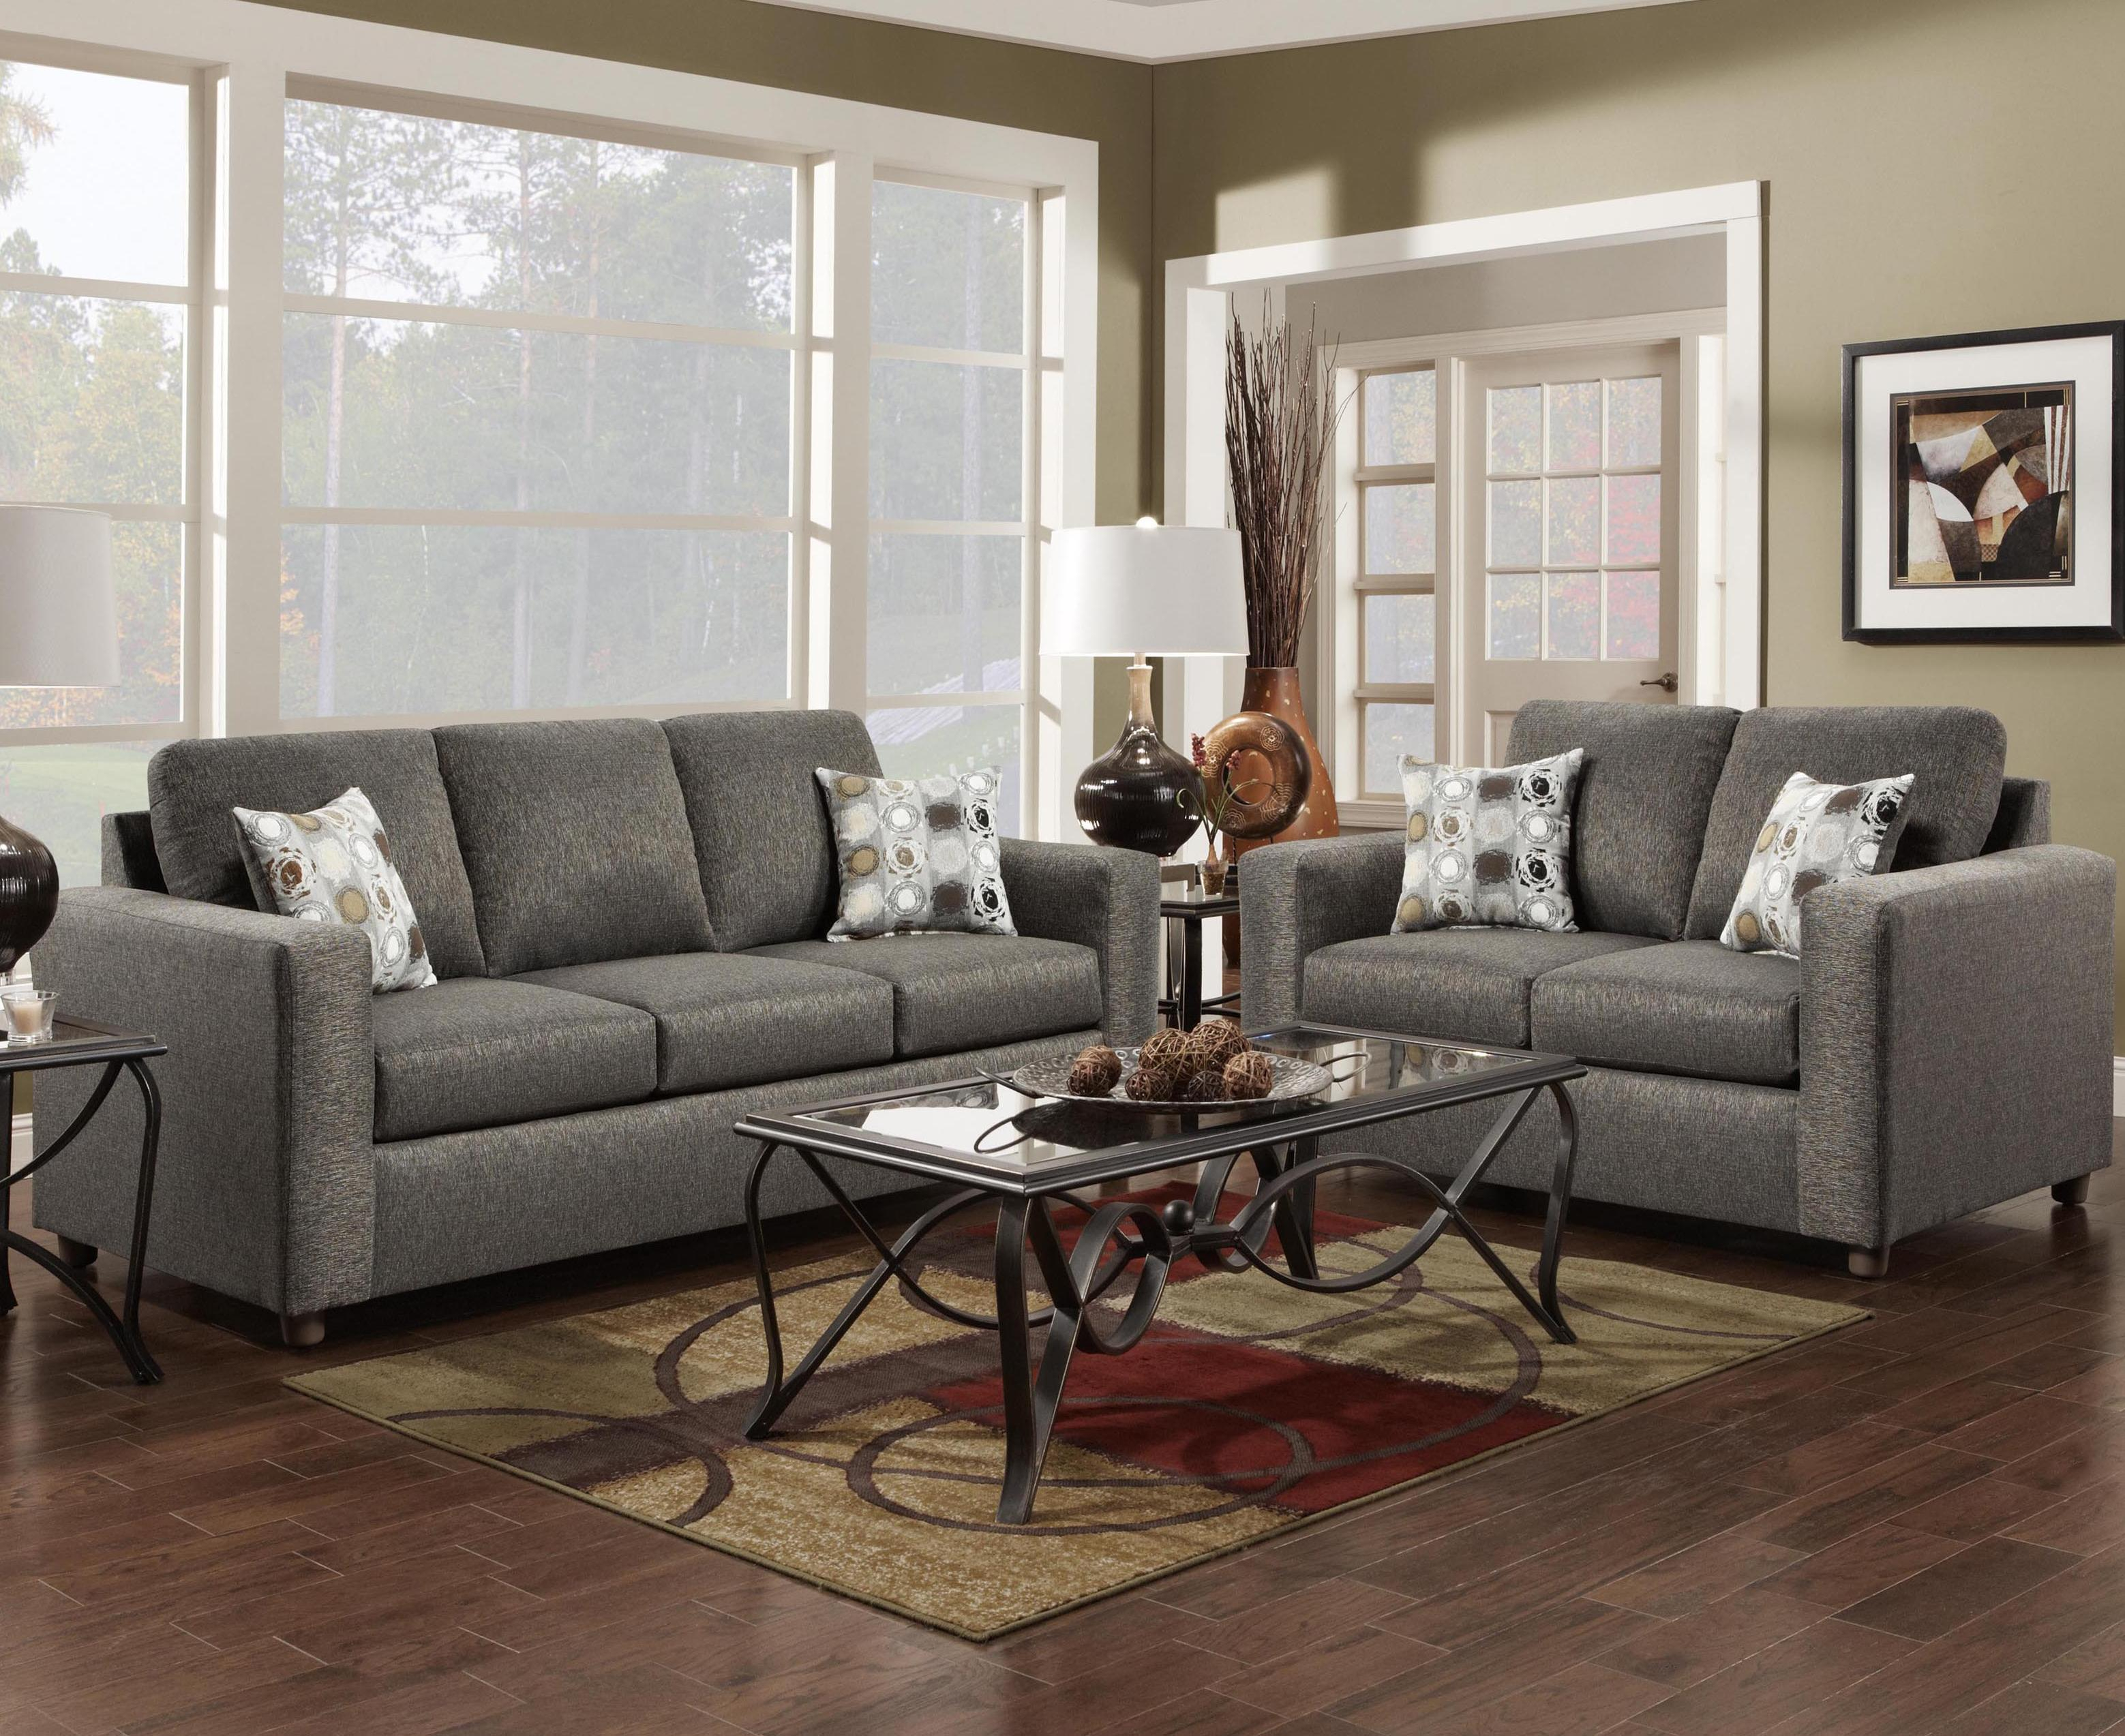 Stationary Living Room Group 3600 Affordable Furniture Wilcox in 11 Awesome Initiatives of How to Makeover Affordable Living Room Sets